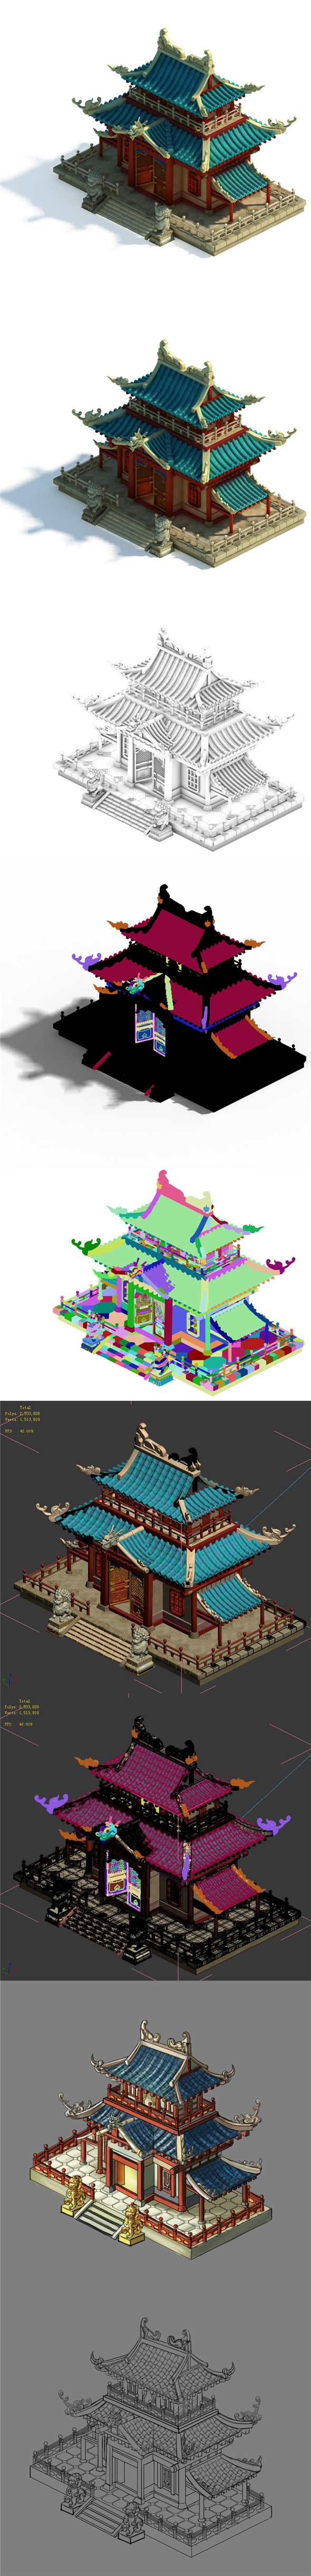 Volcano Hill - Palace Architecture 02 - 3DOcean Item for Sale